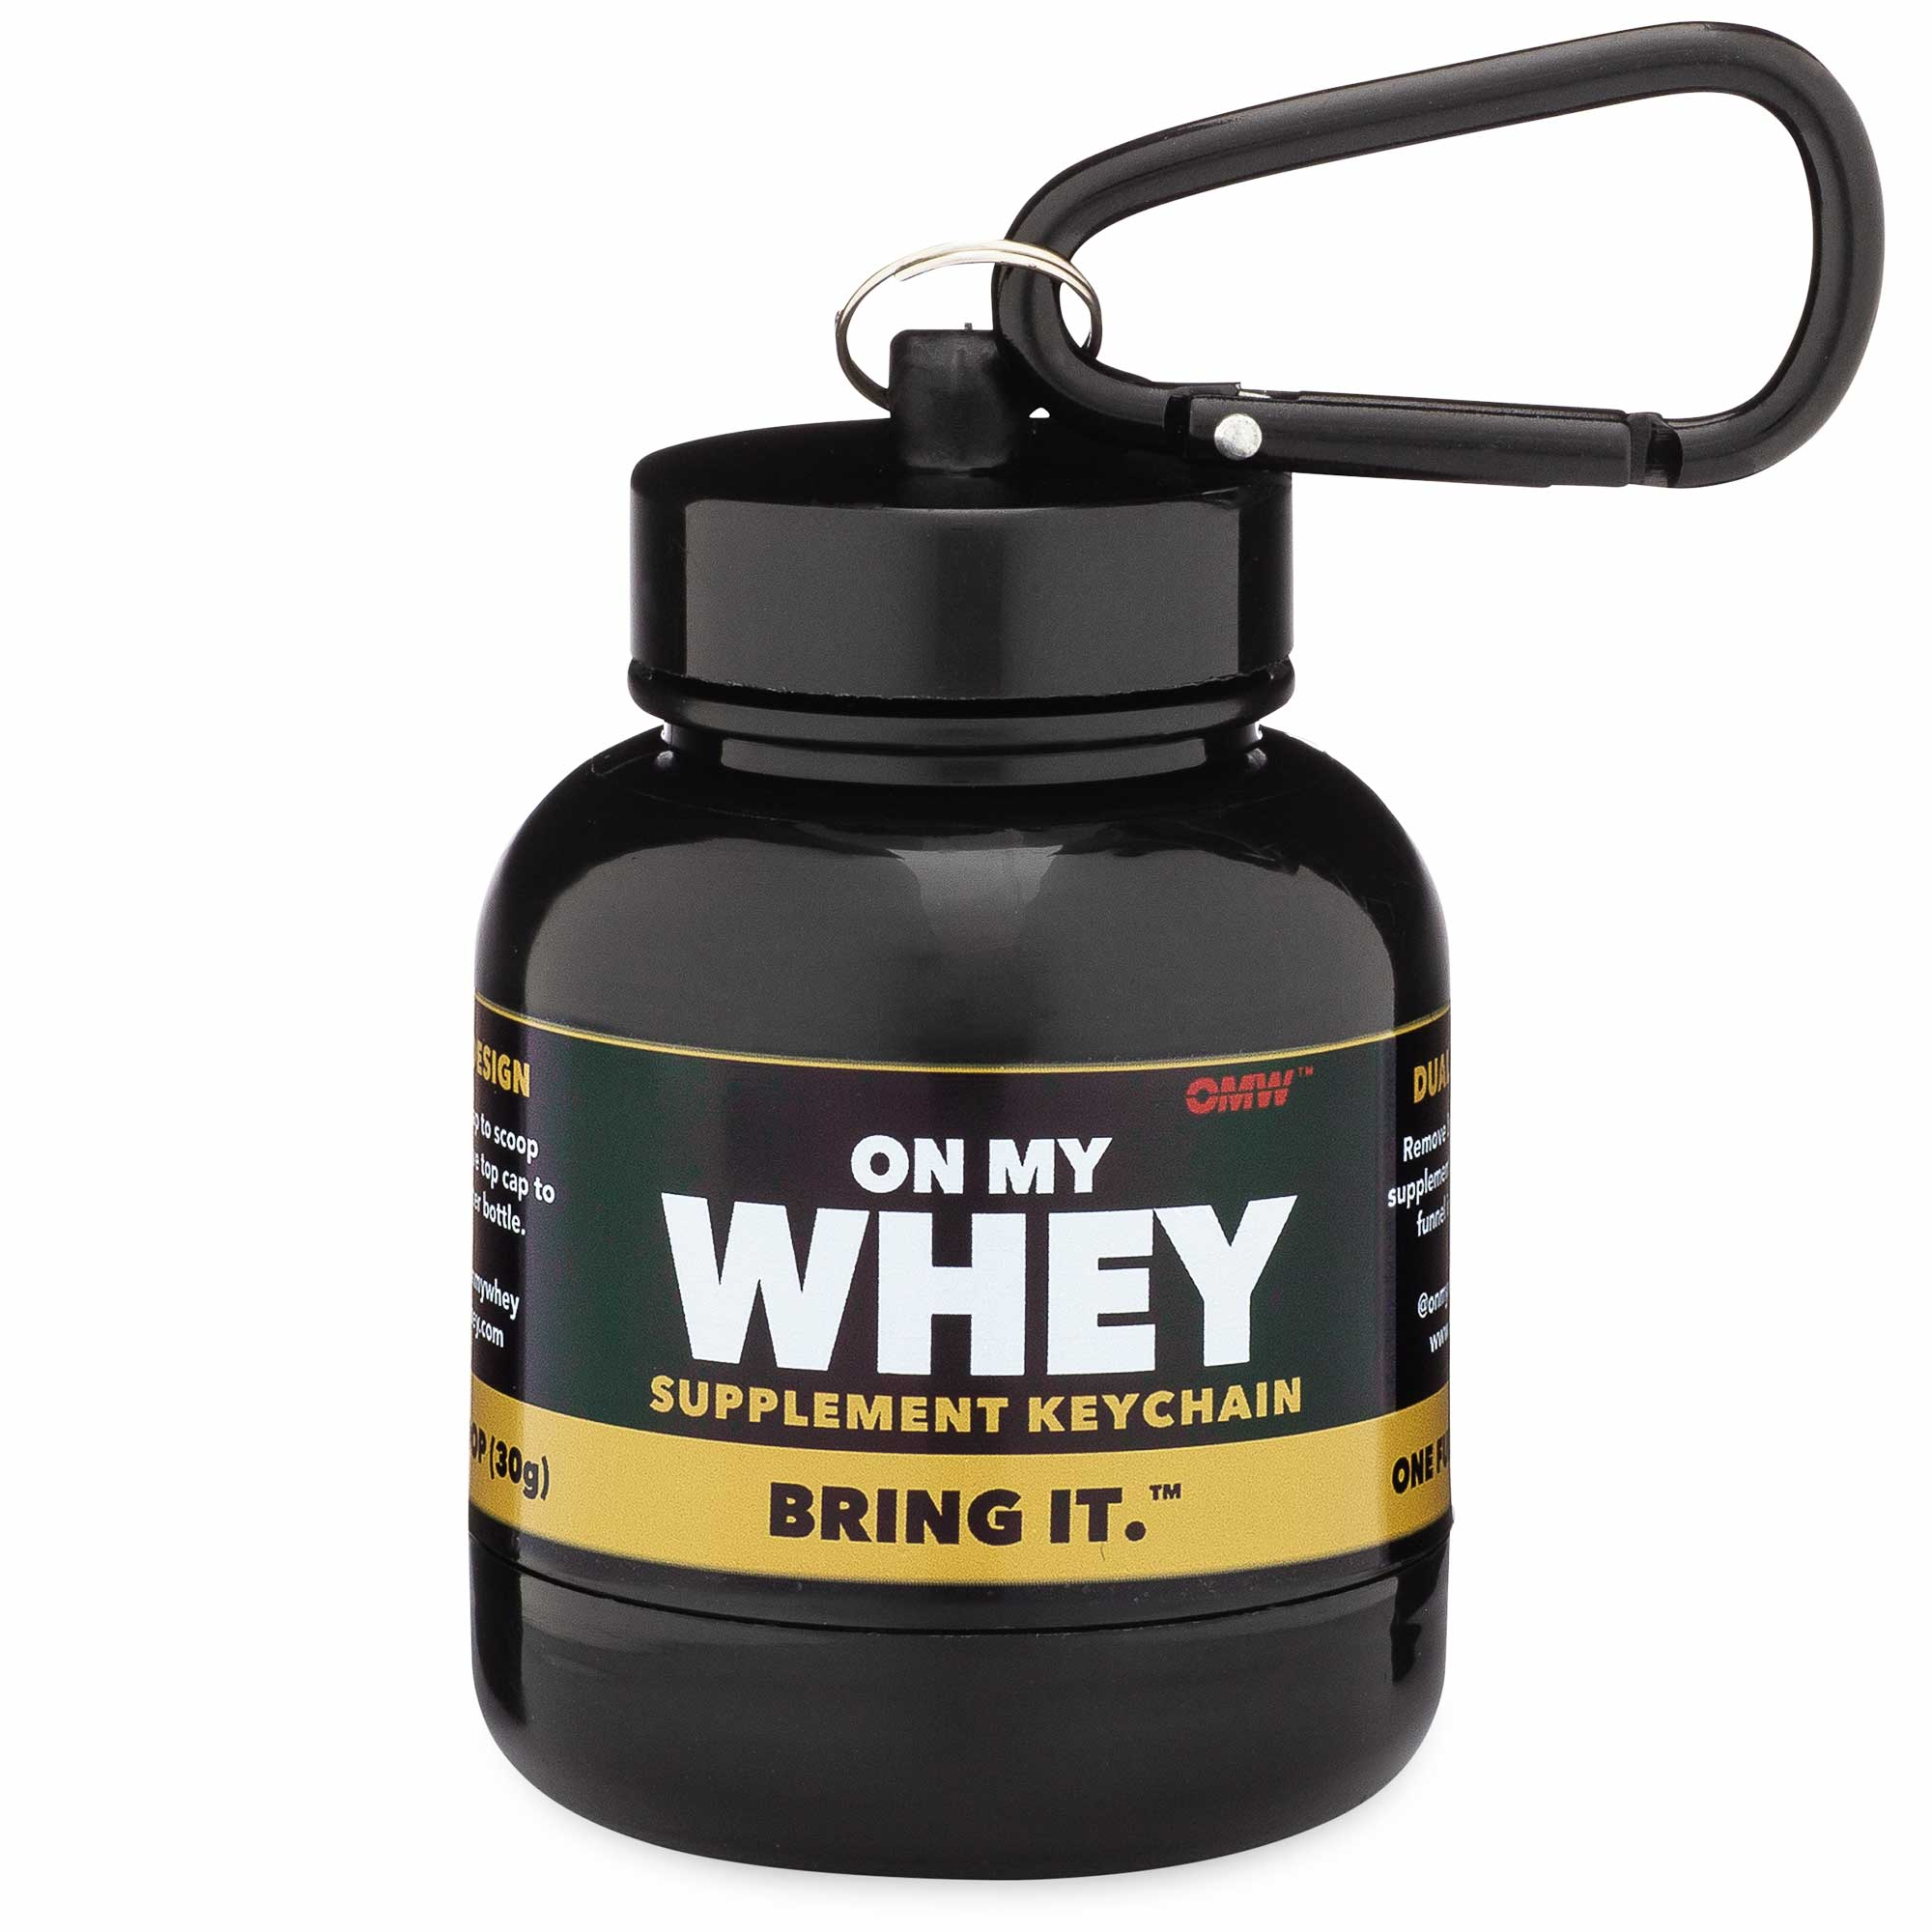 OnMyWhey Protein and Supplement Keychain